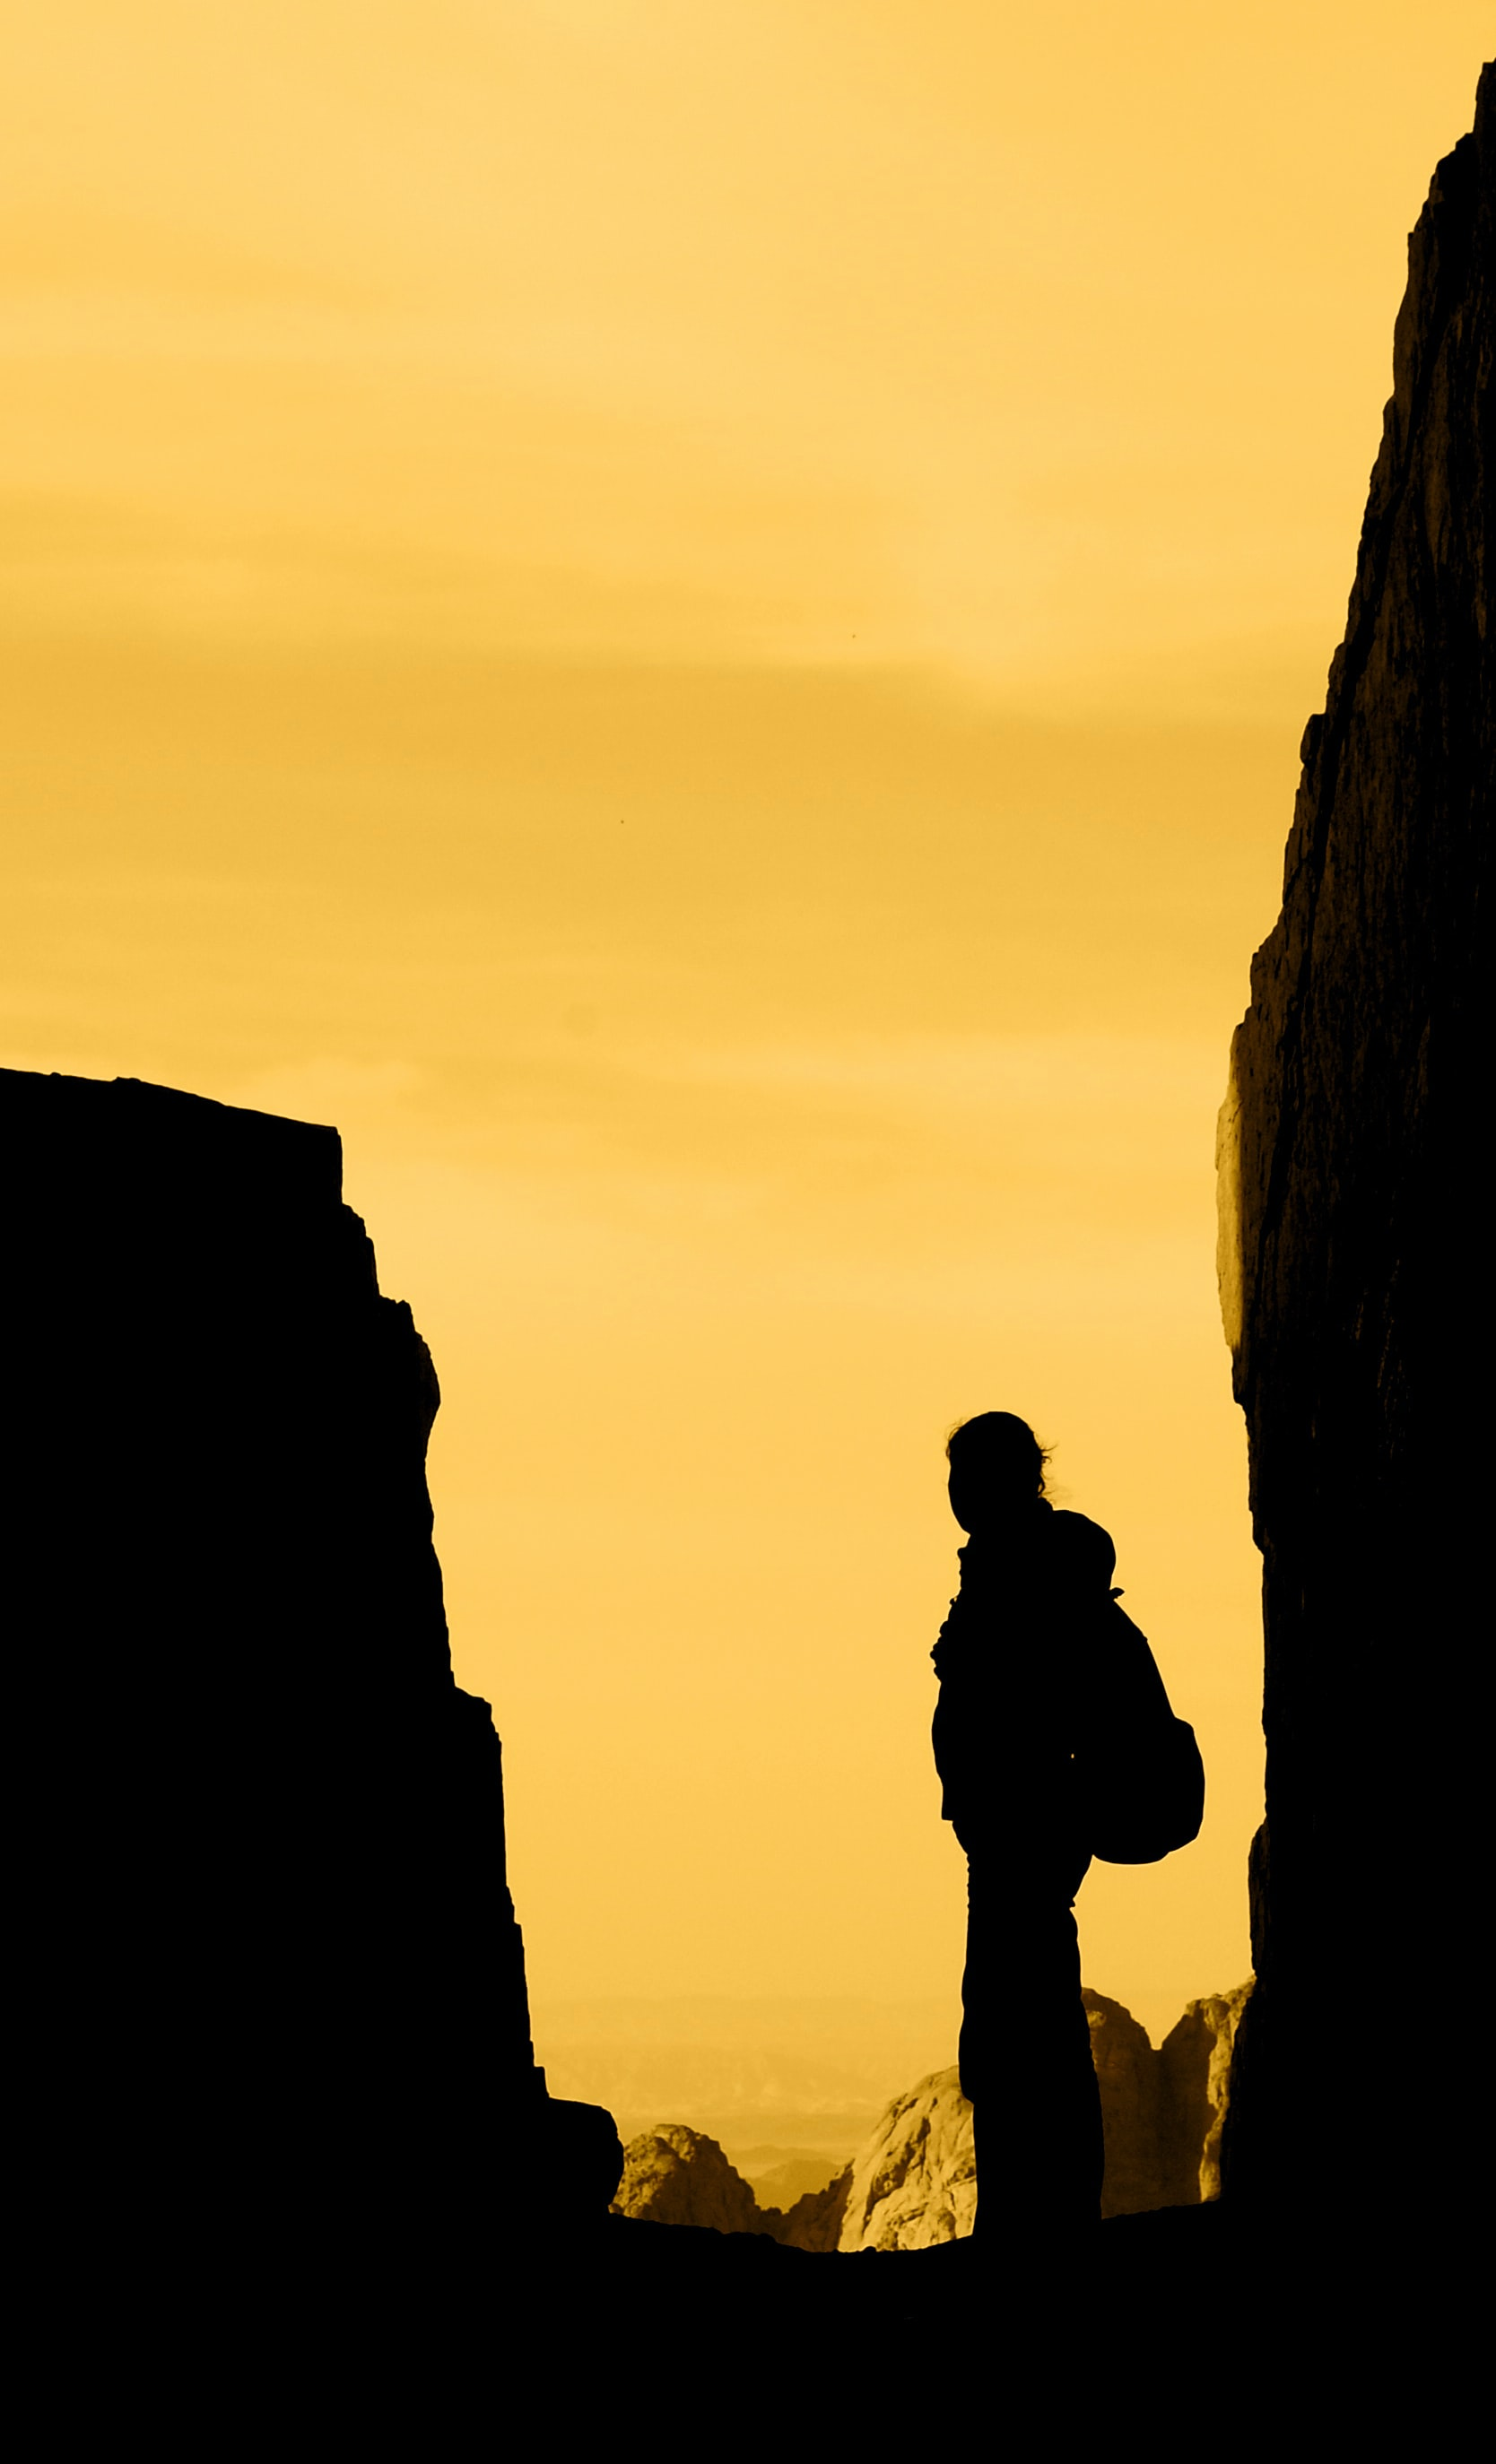 silhouette of person standing in between rocks